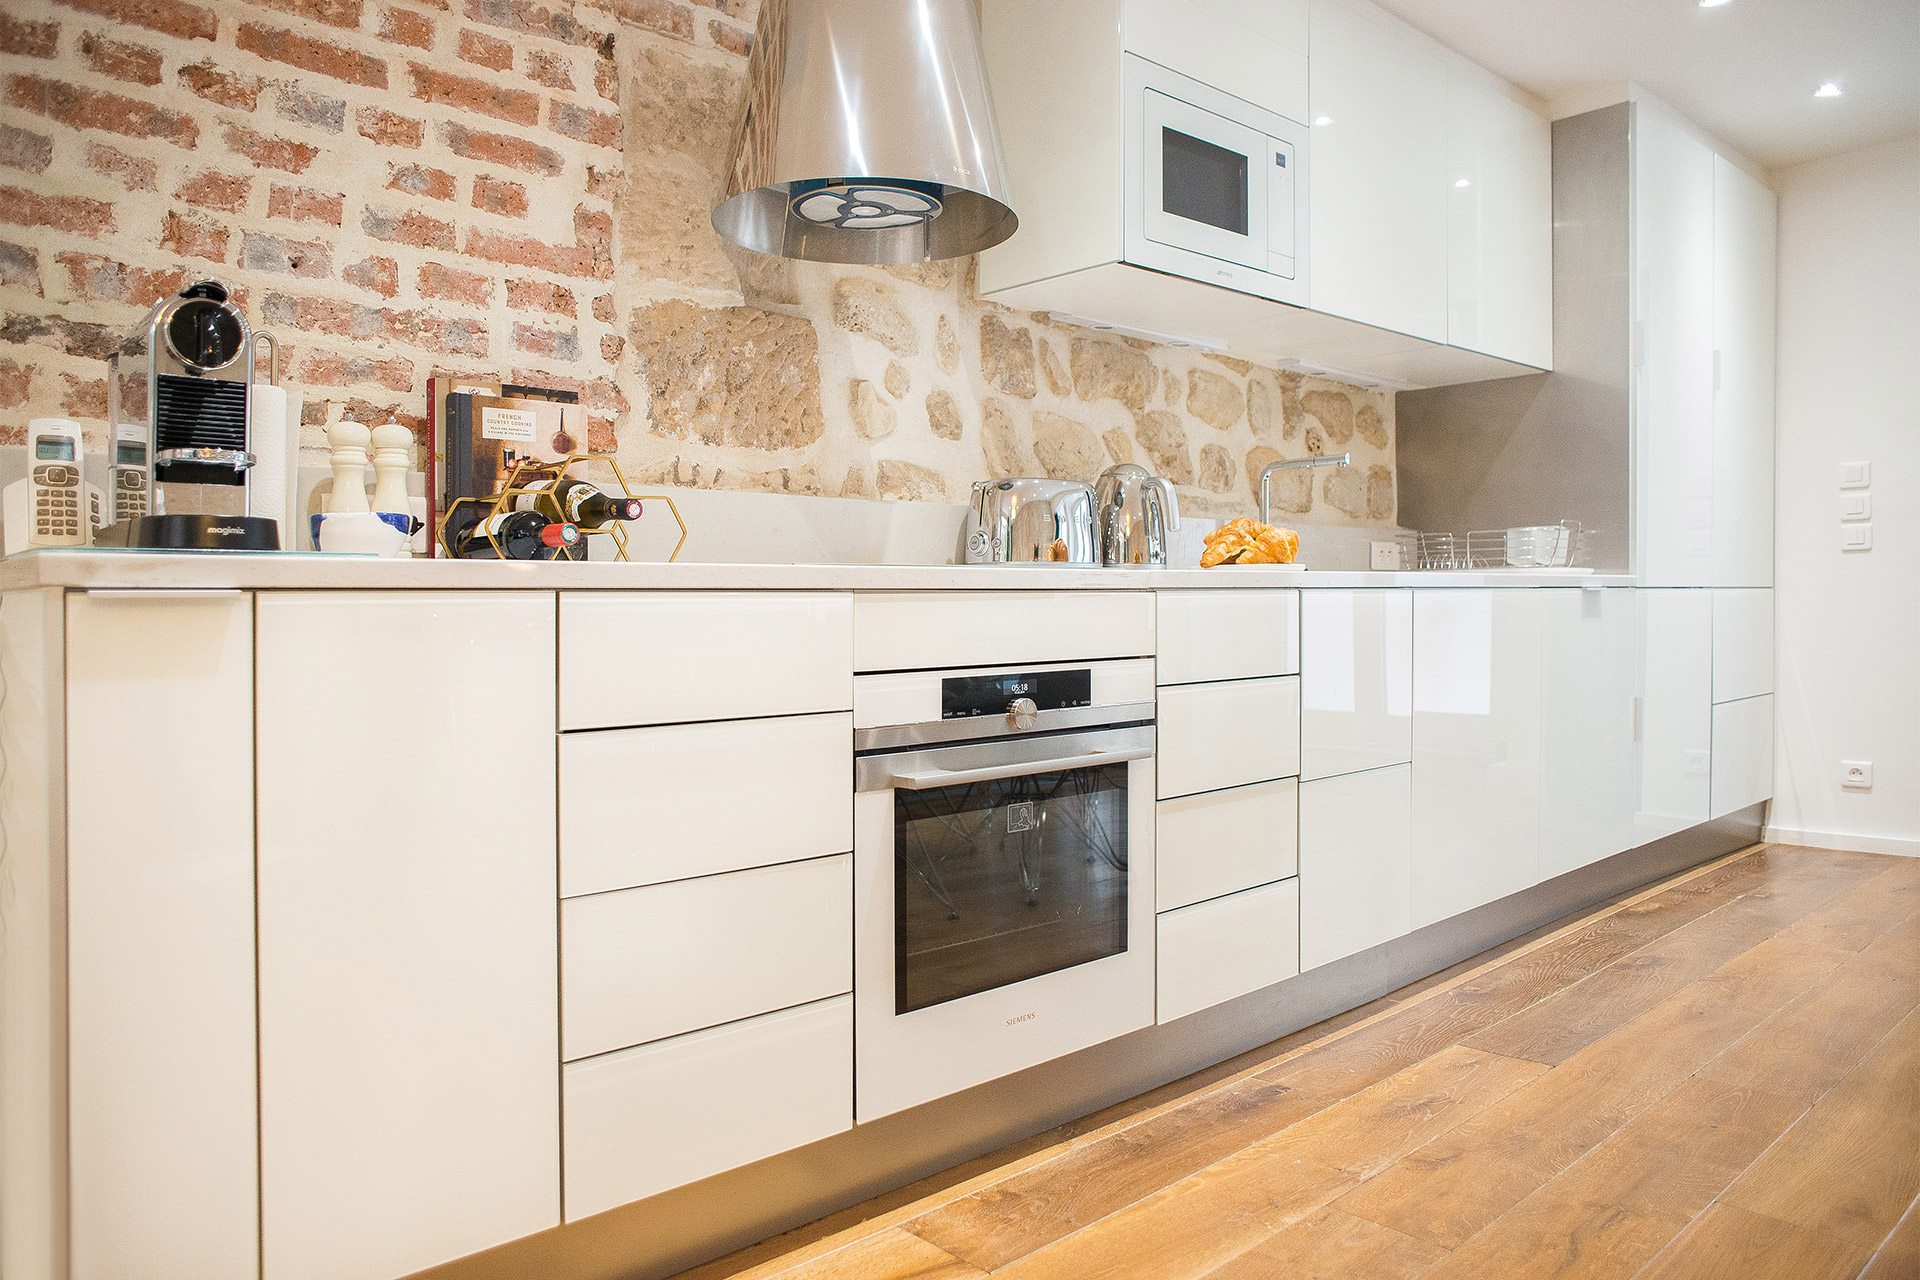 Elegant modern kitchen in the Lascombes rental is fully equipped with everything you need